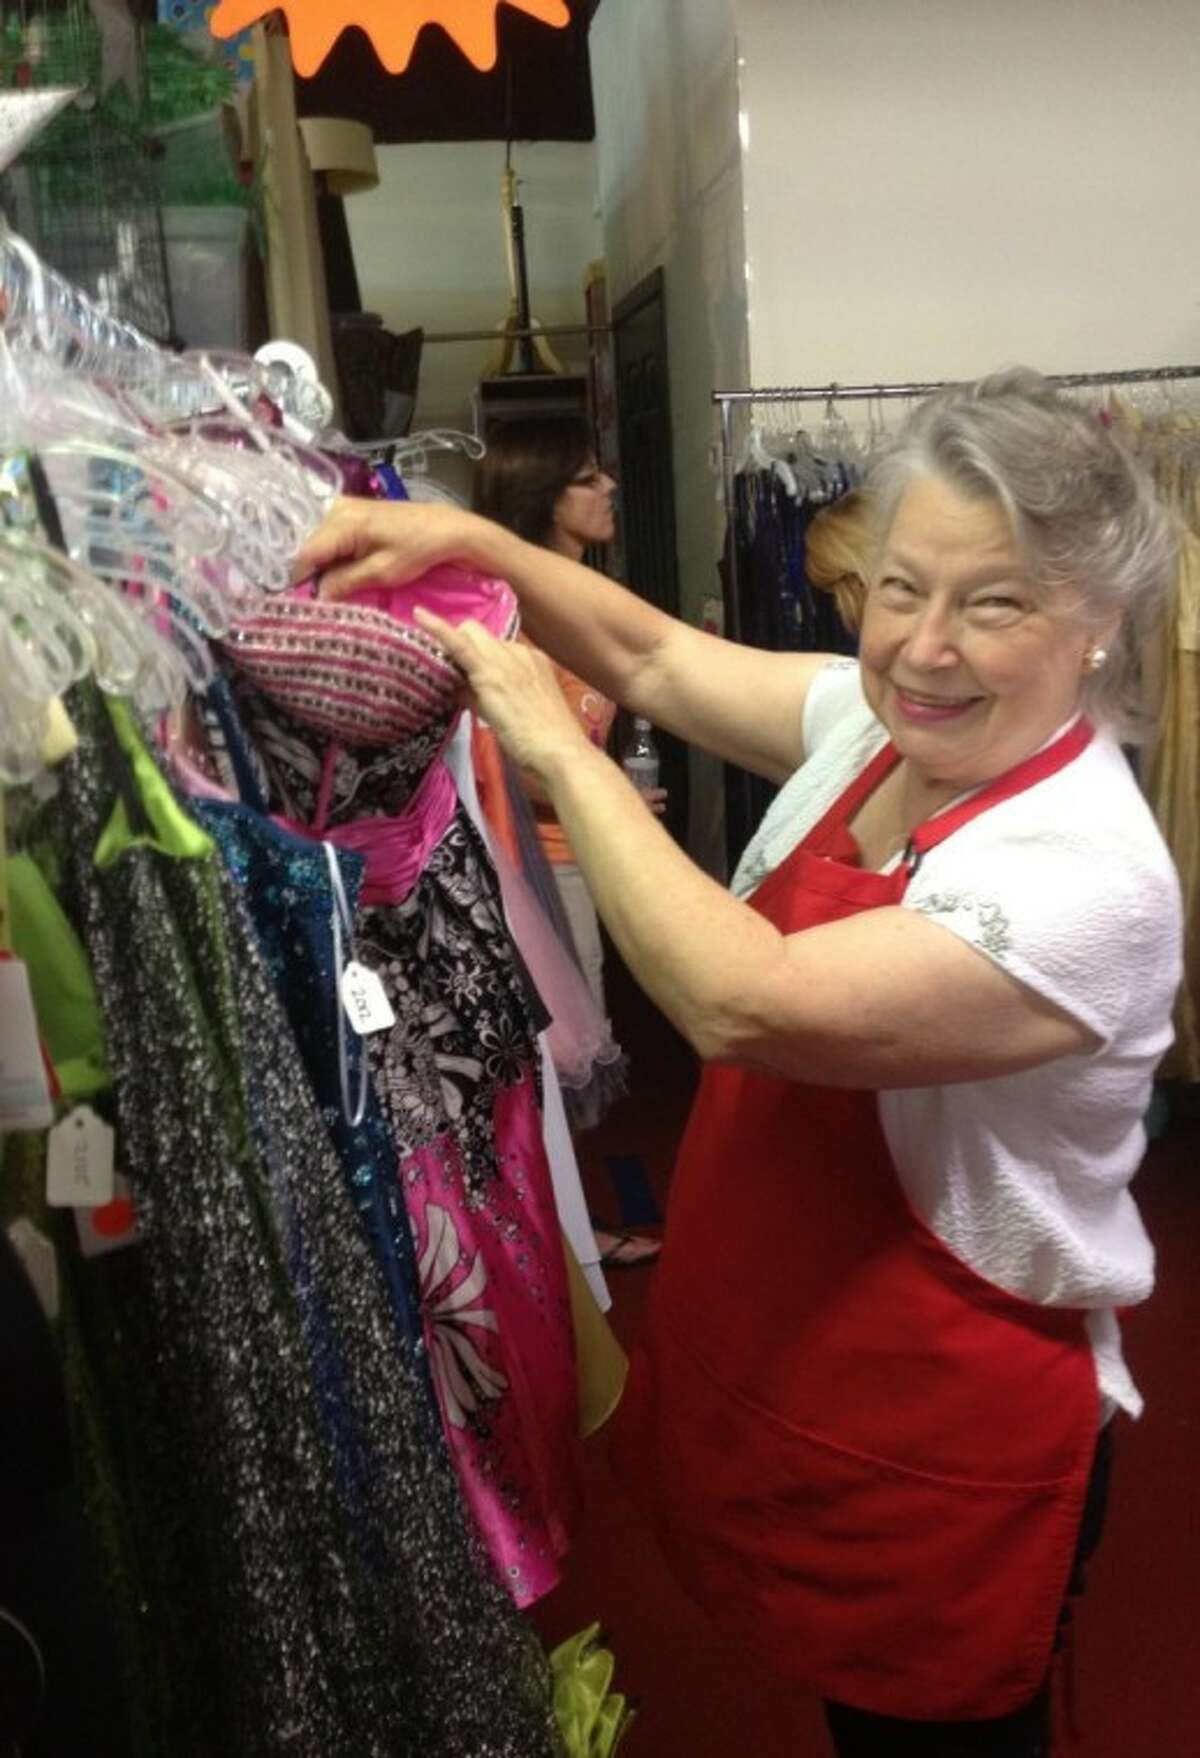 Linda Goerland organizes the prom dresses for Bay Area Cinderellas at the Assistance League Resale Shop in Webster.